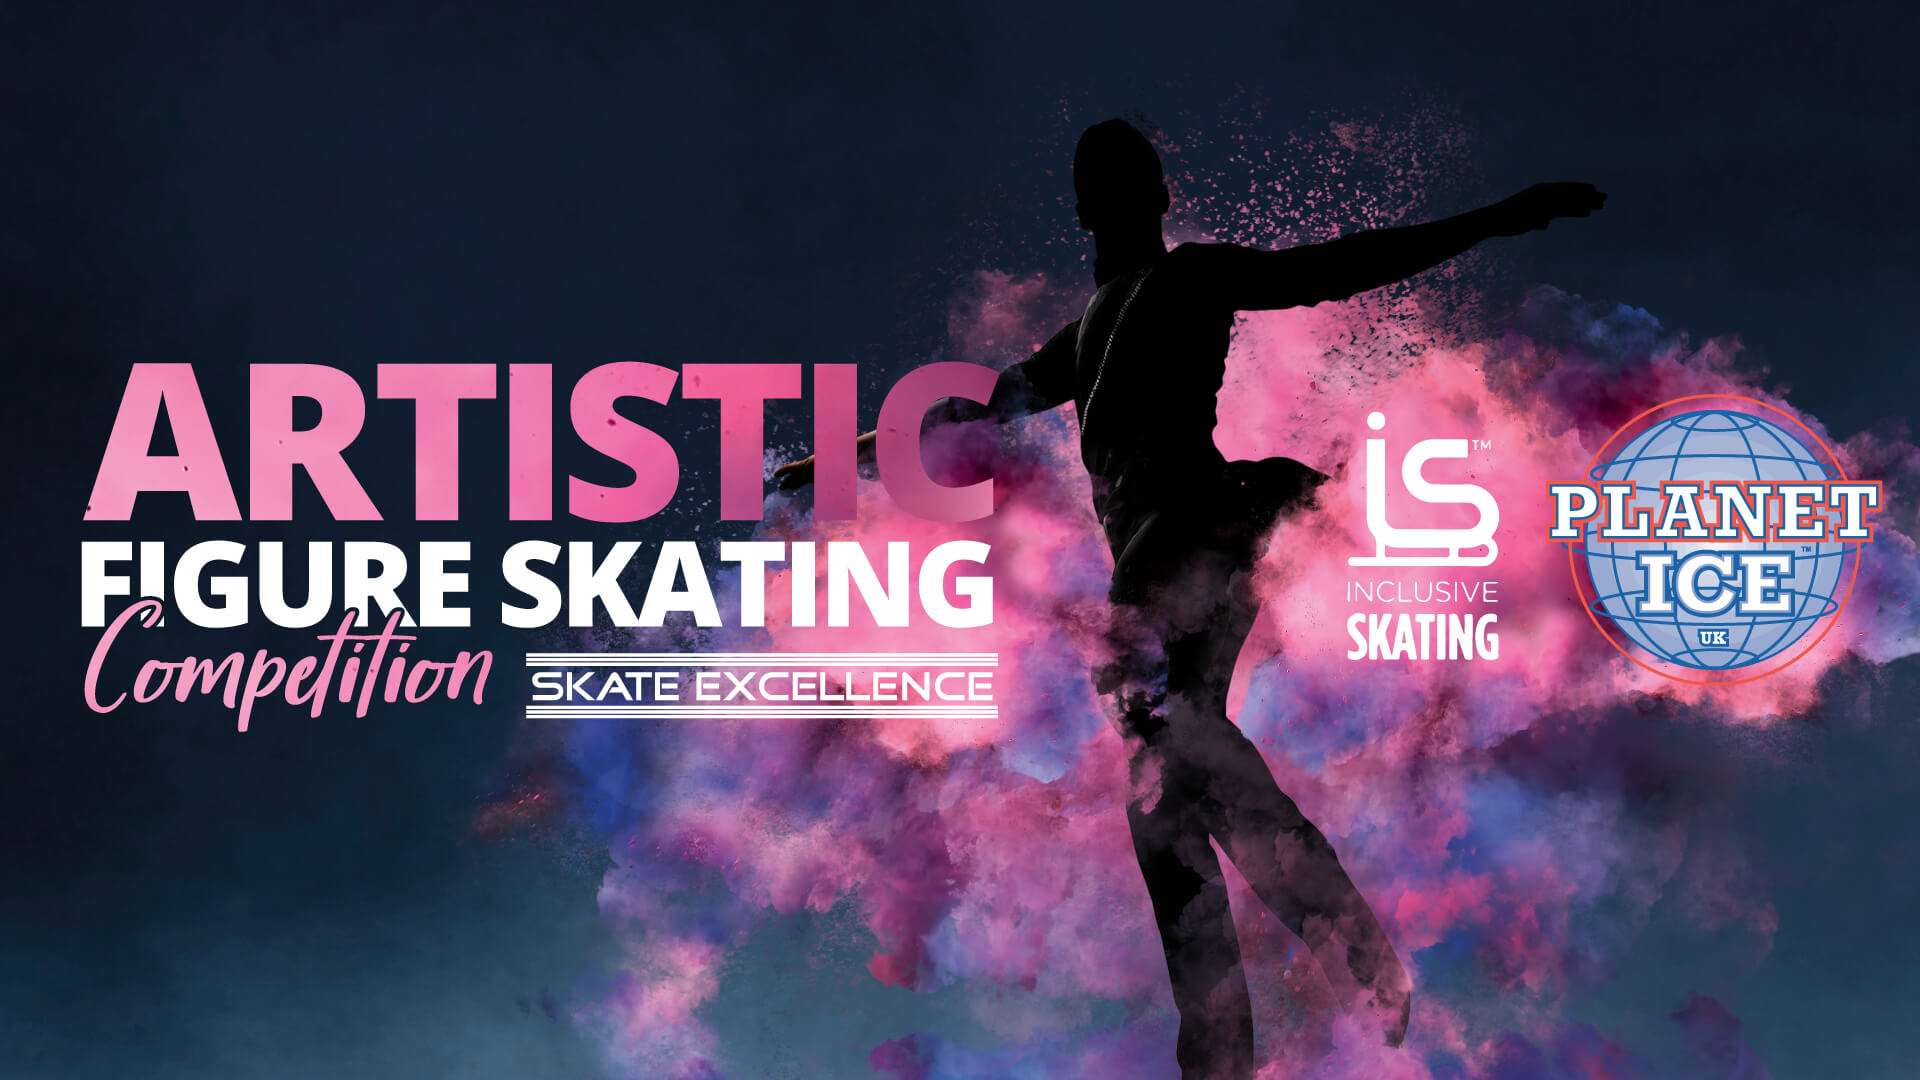 Artistic Figure Skating Competition 2021